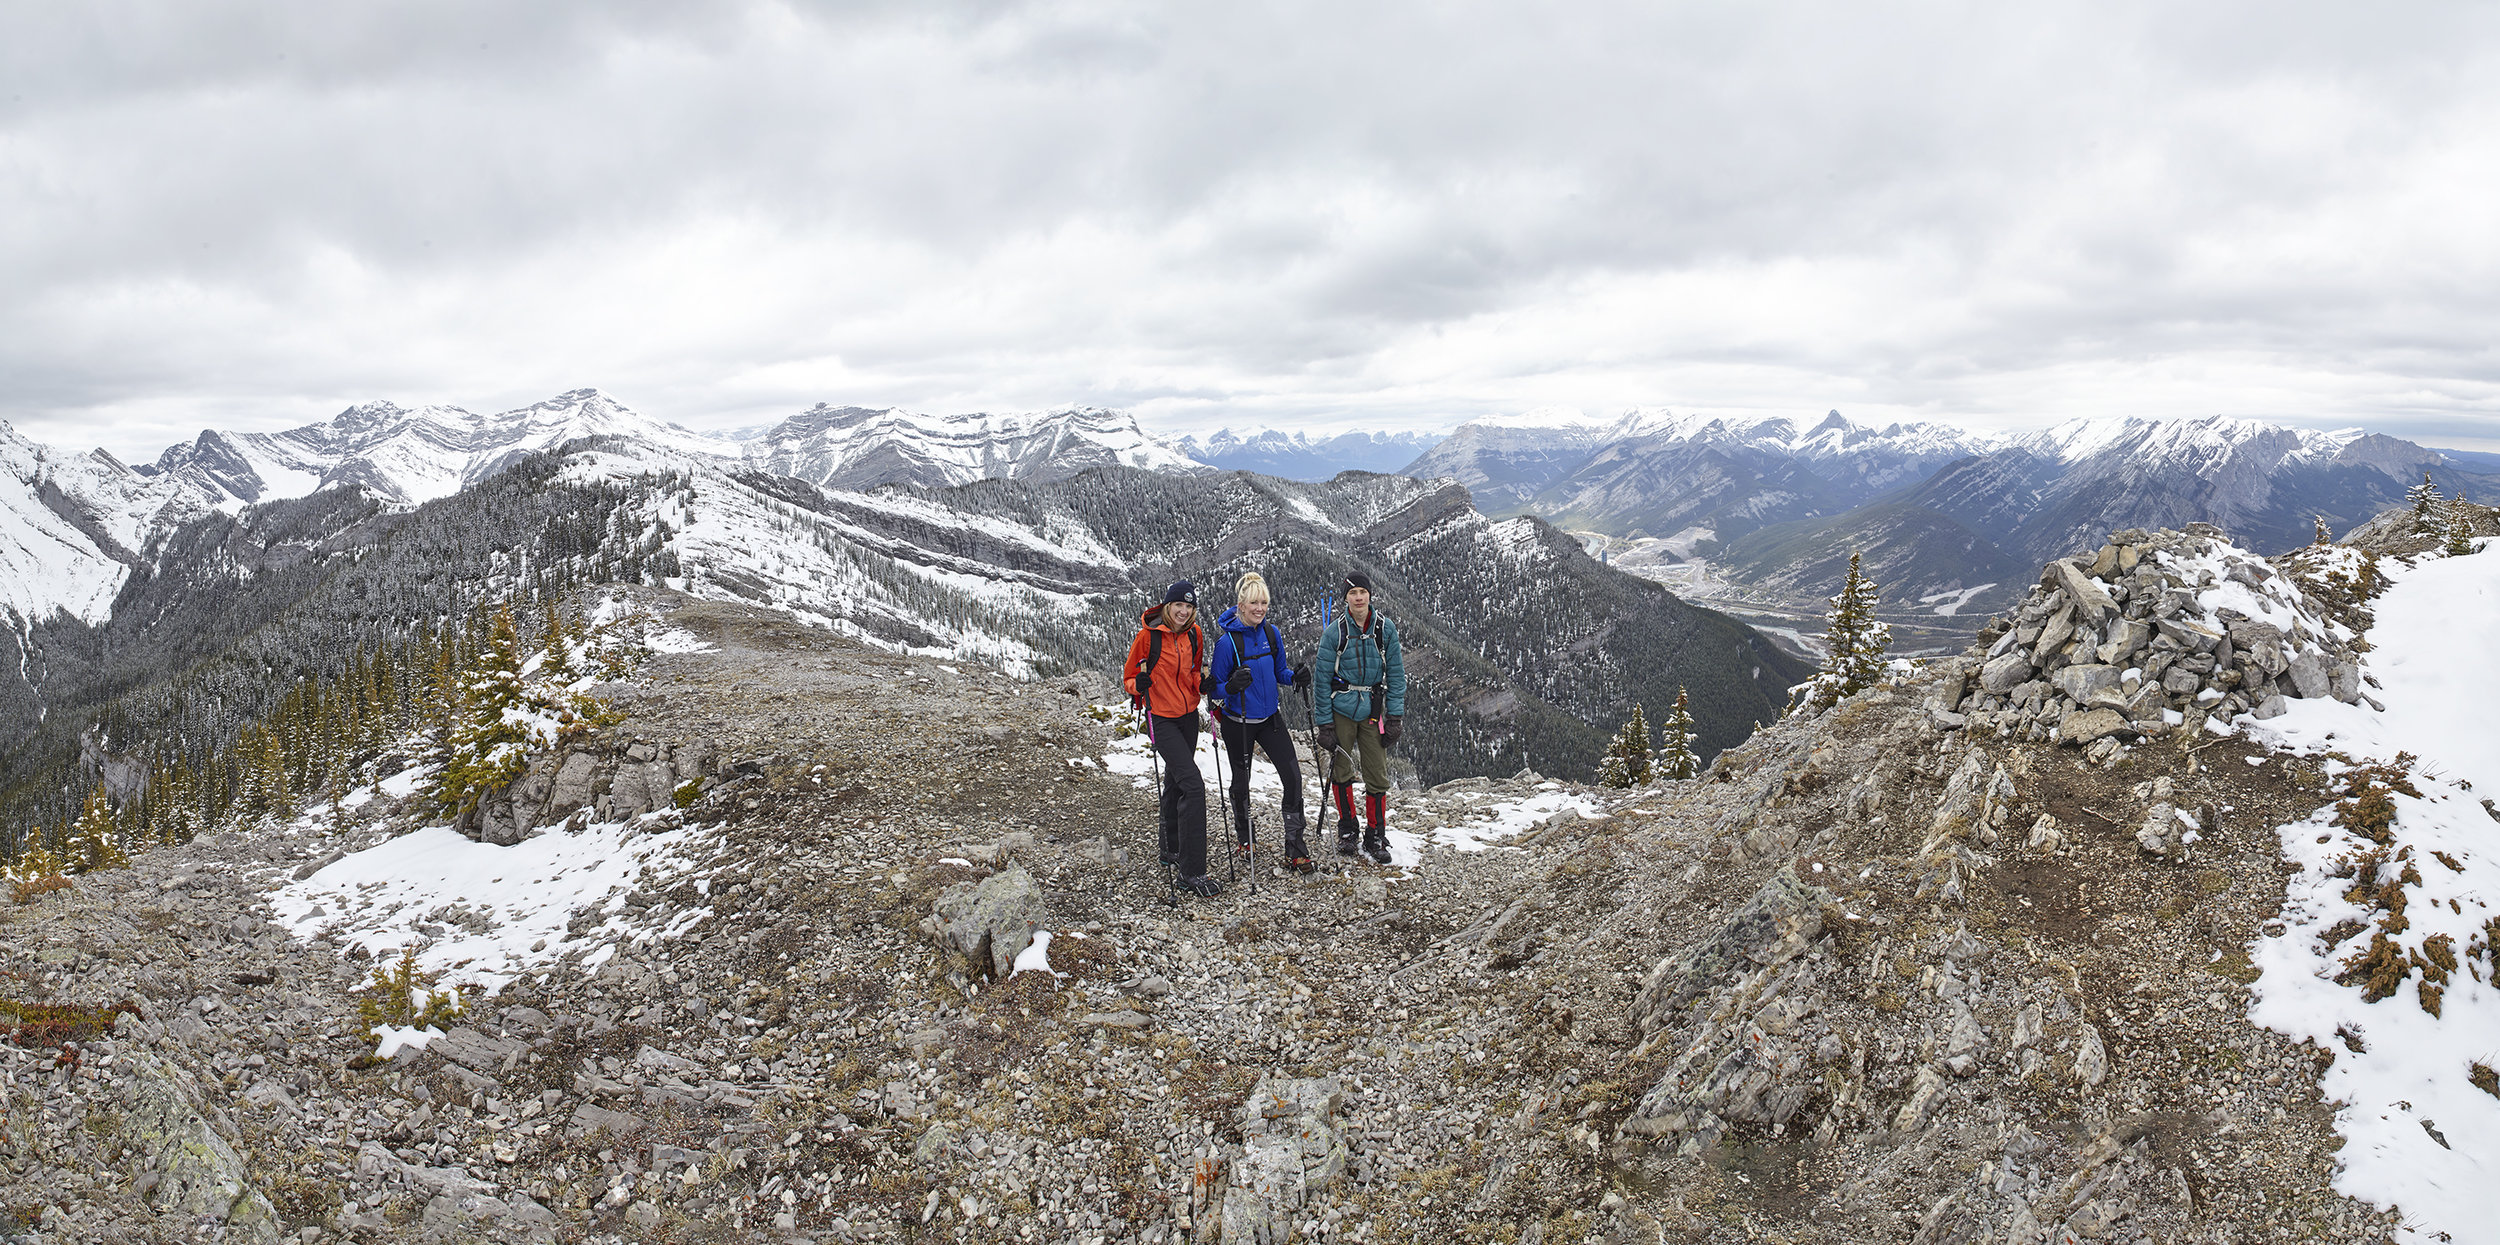 A panorama showing the entire traverse from Heart Mountain to Grant MacEwan Peak.